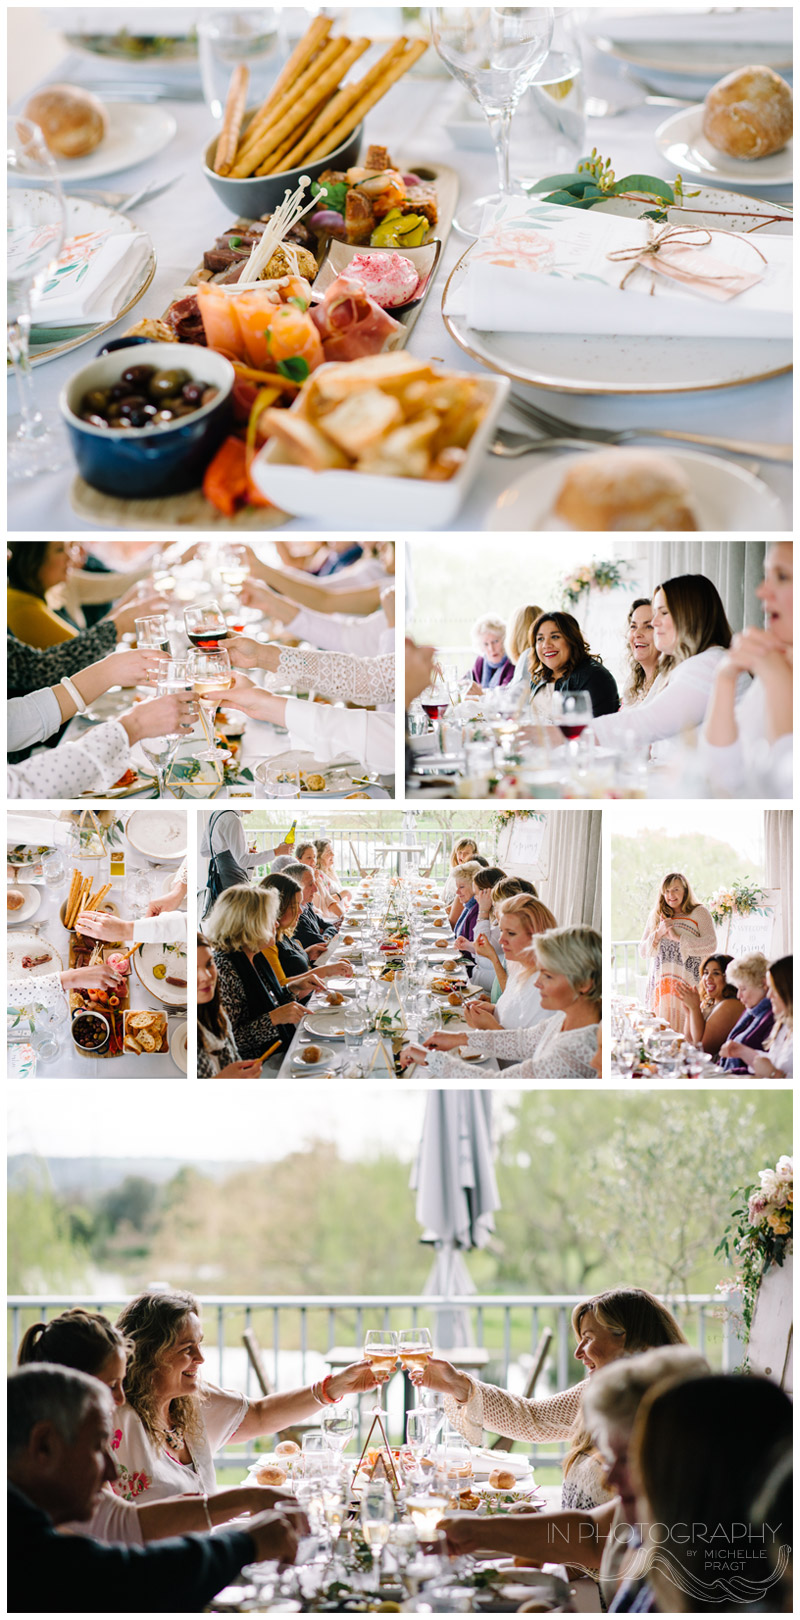 Mornington Peninsula wedding at Stillwater at Crittenden winery